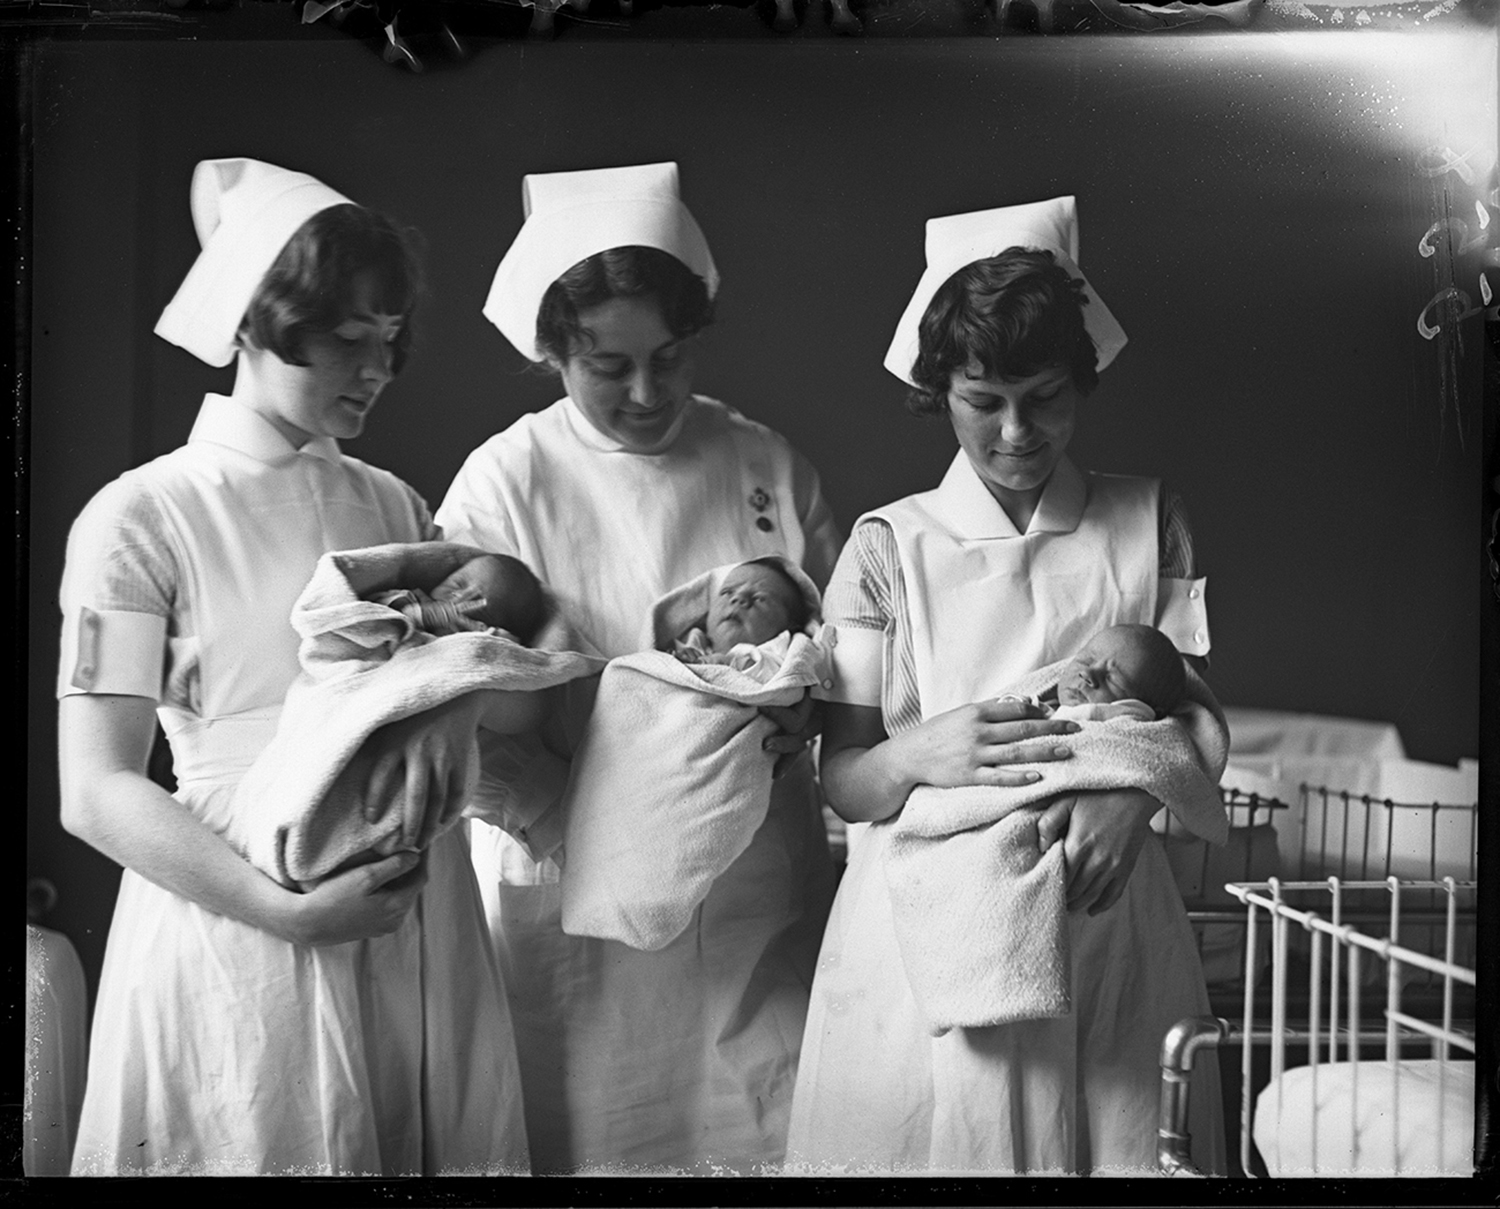 Triplets born to Mr. and Mrs. Lyman Atterberry of Petersburg at St. John's Hospital, two girls and a boy, August 21, 1930. File/The State Journal-Register